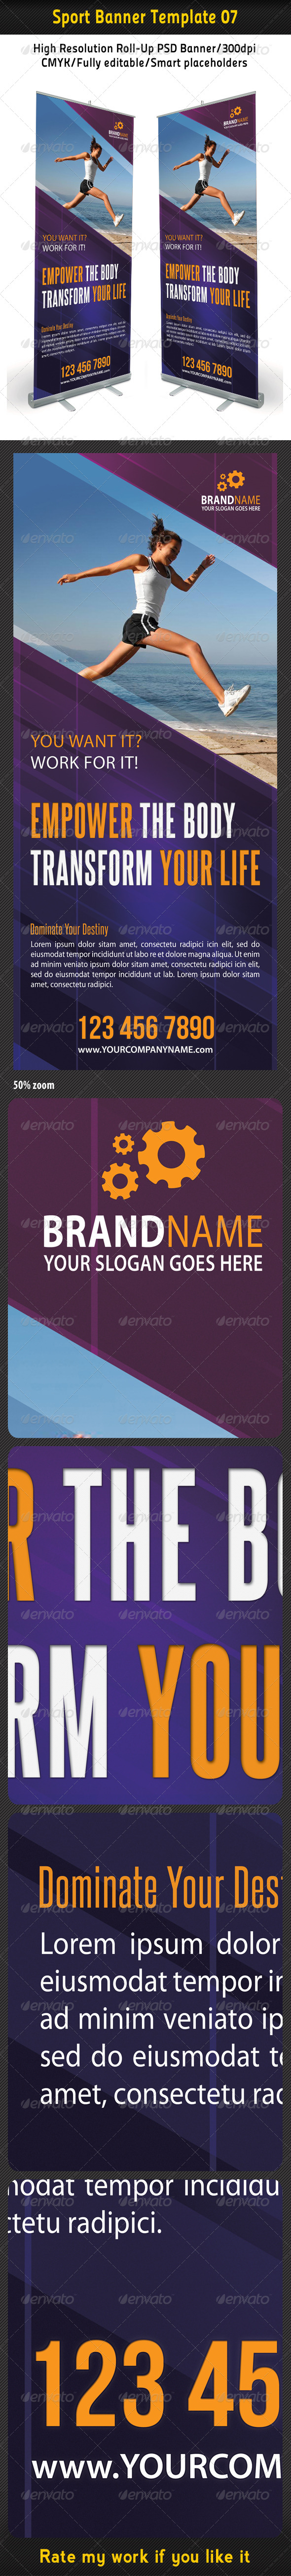 Sport Banner Template 07 - Signage Print Templates